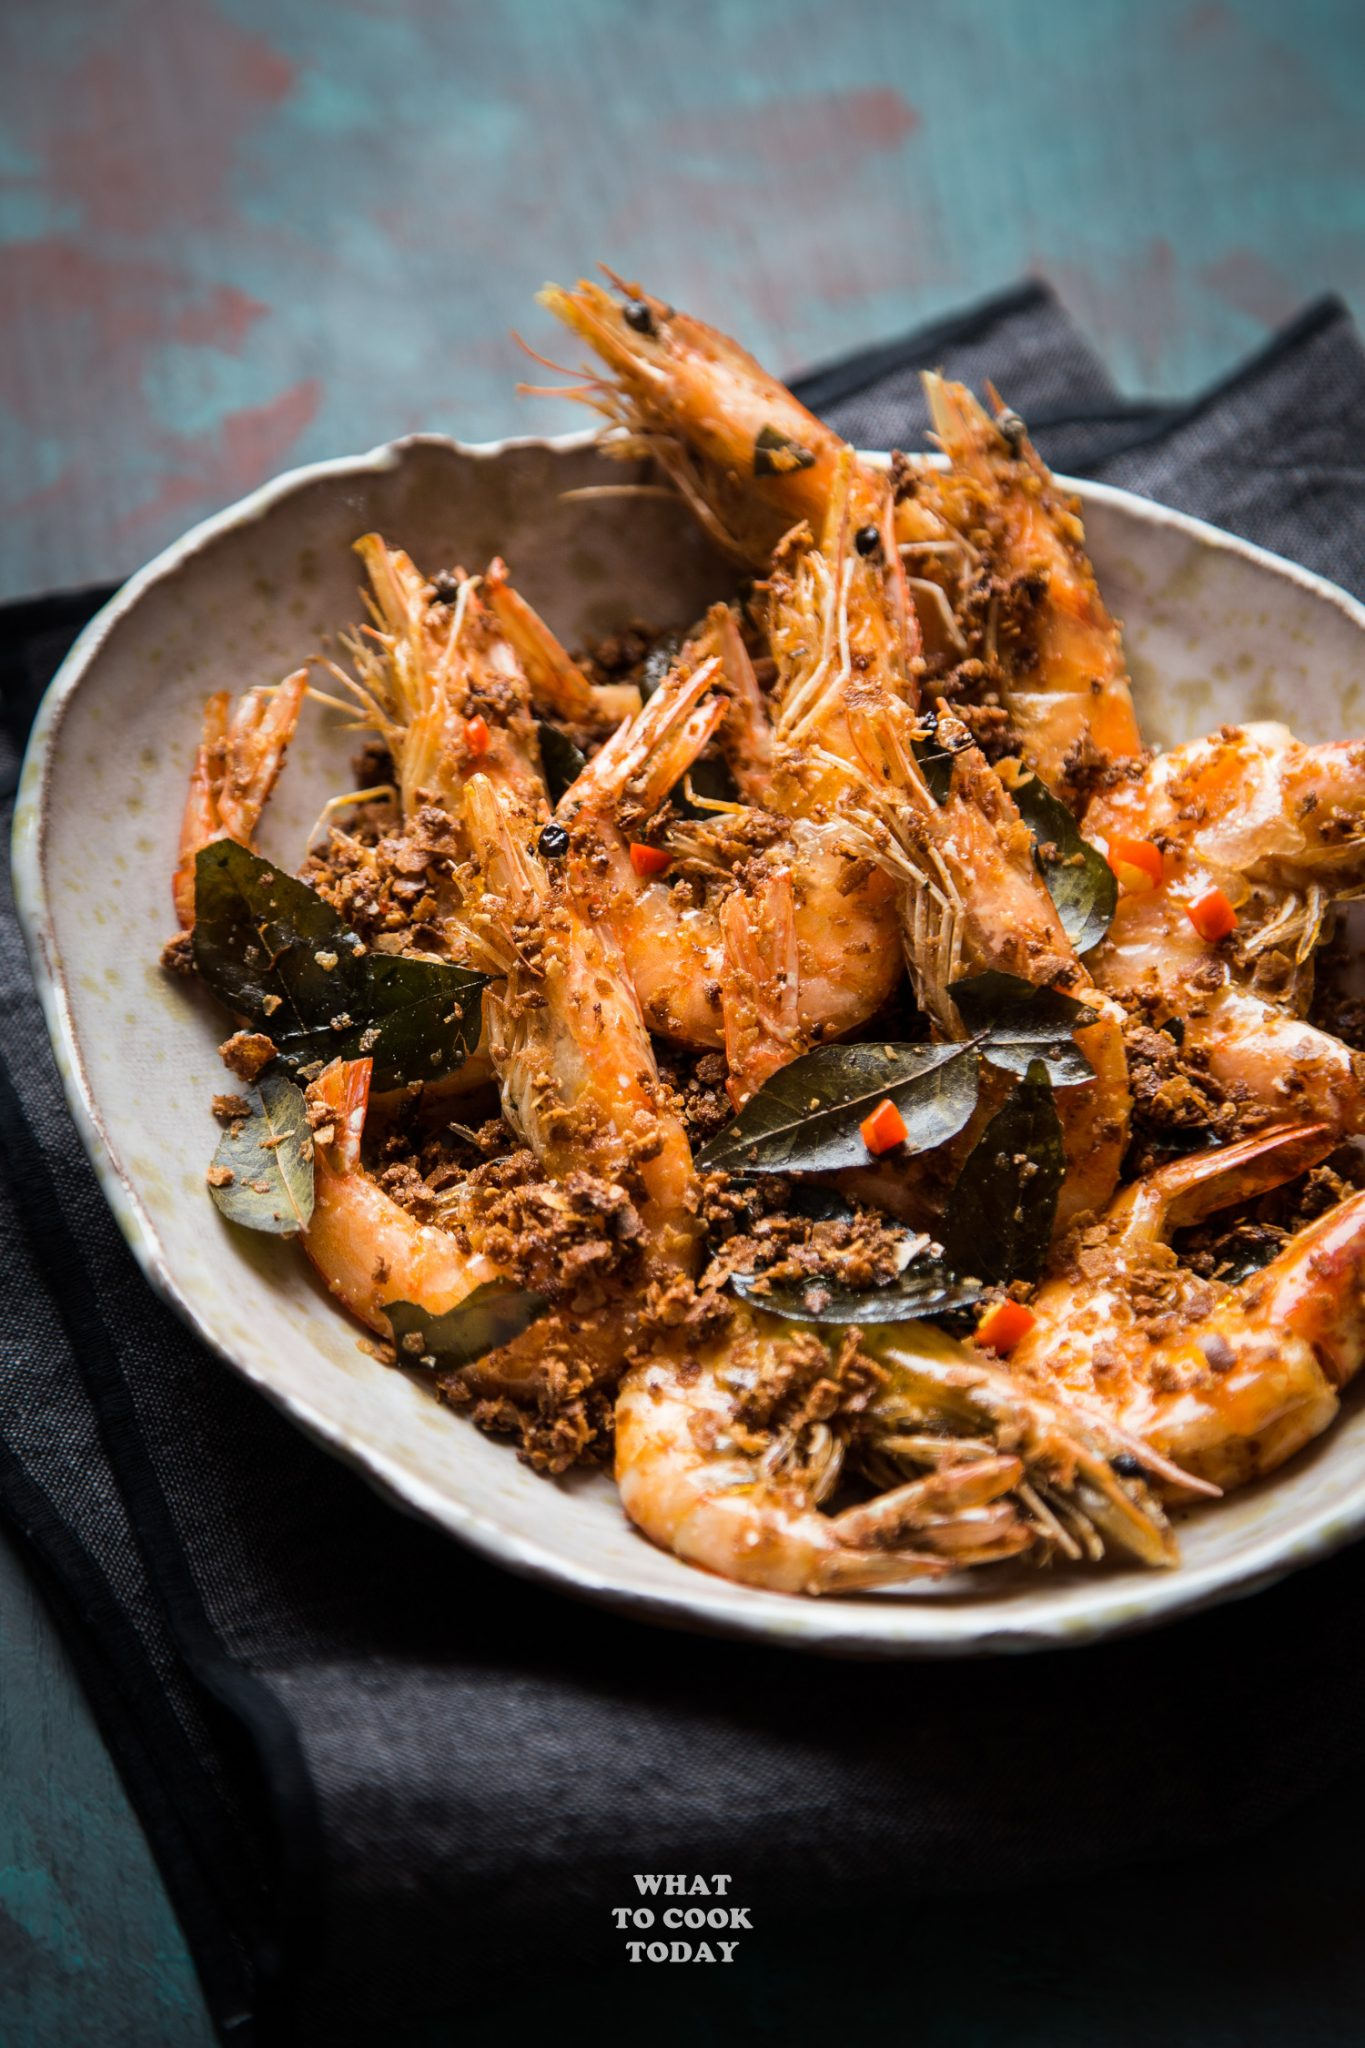 Cereal Butter Prawn (Mai Pian Xia) #prawn #shrimp #nestum #cereal #CNY #curryleaves #butter